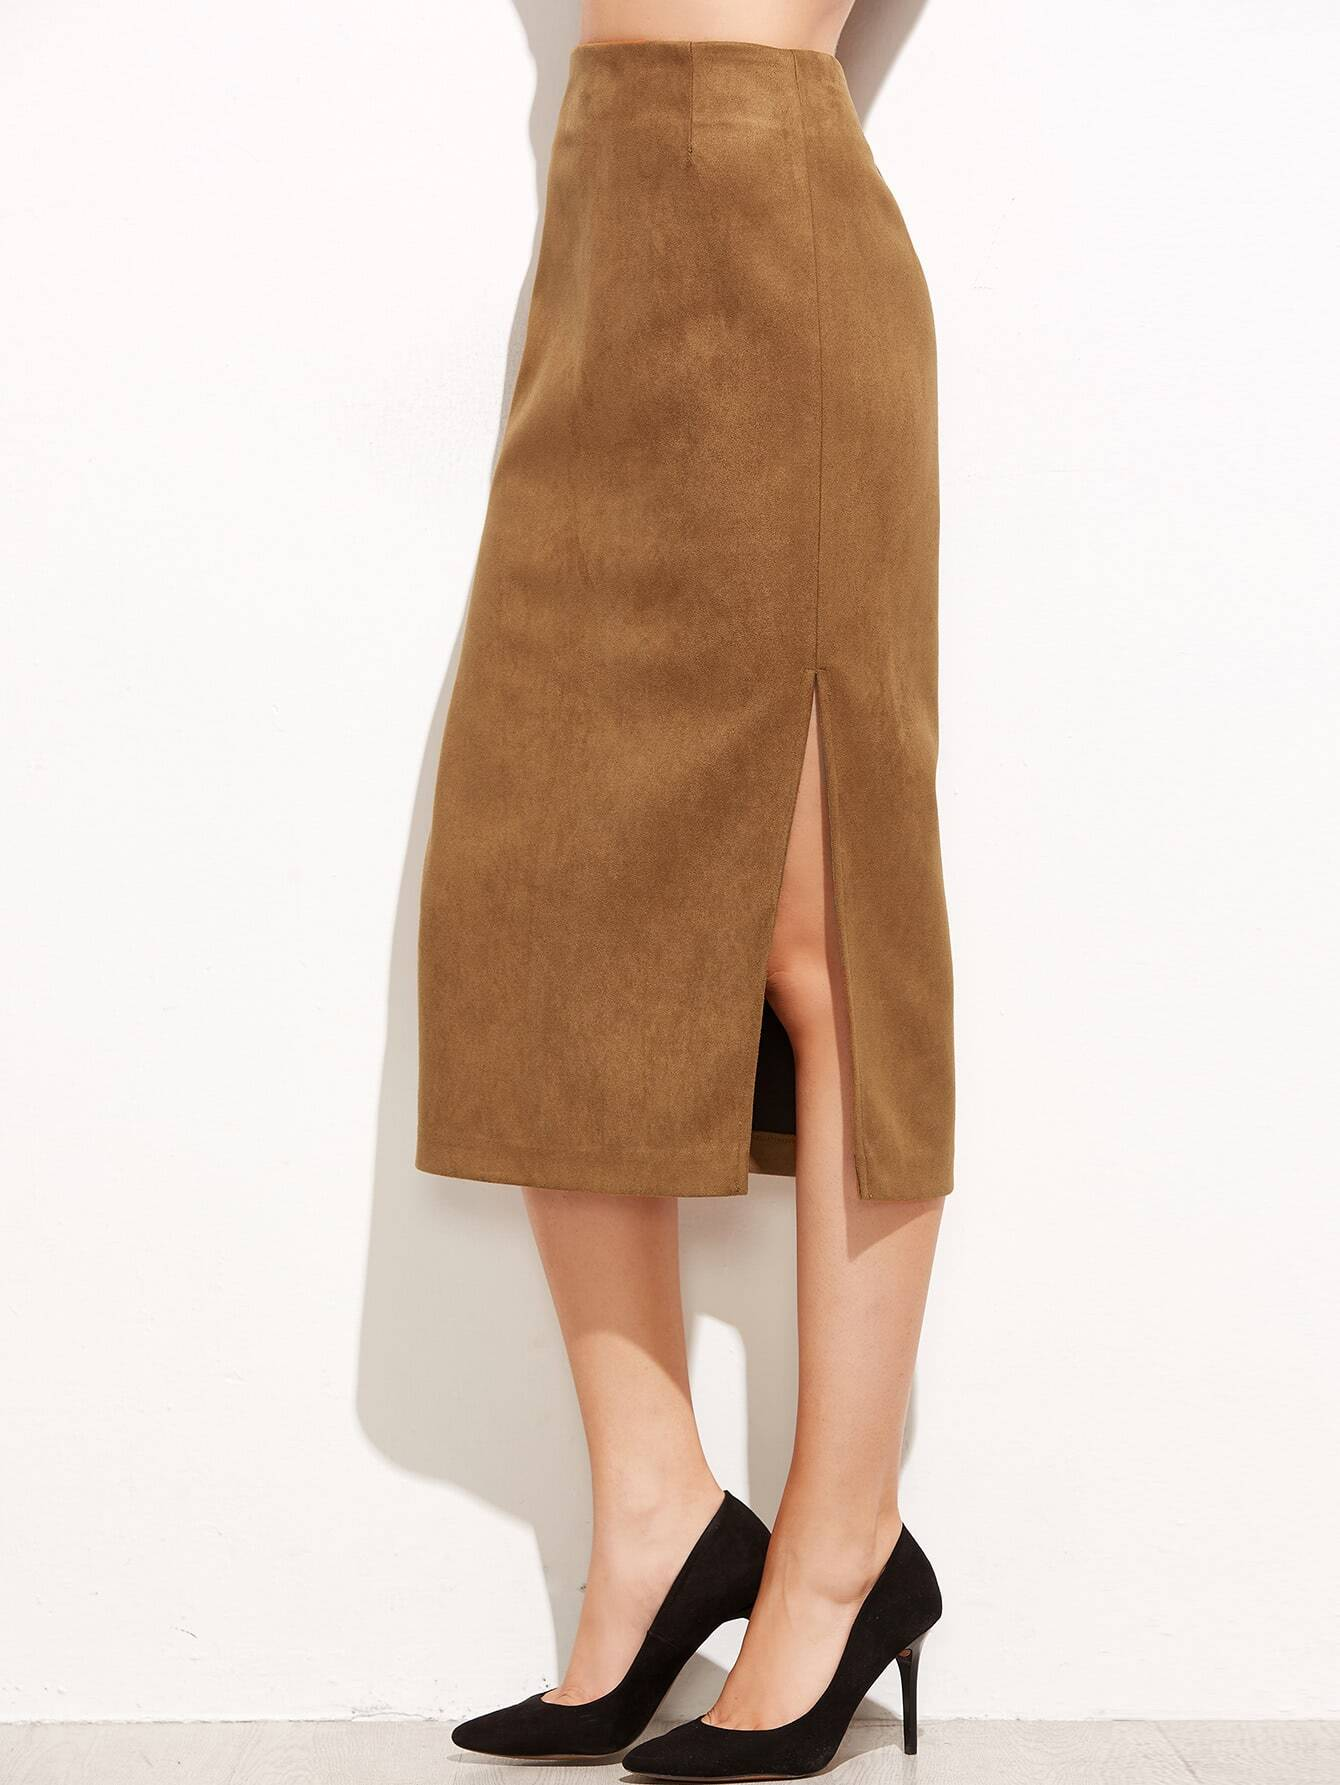 Khaki Suede Split Side SkirtKhaki Suede Split Side Skirt<br><br>color: Khaki<br>size: L,M,S